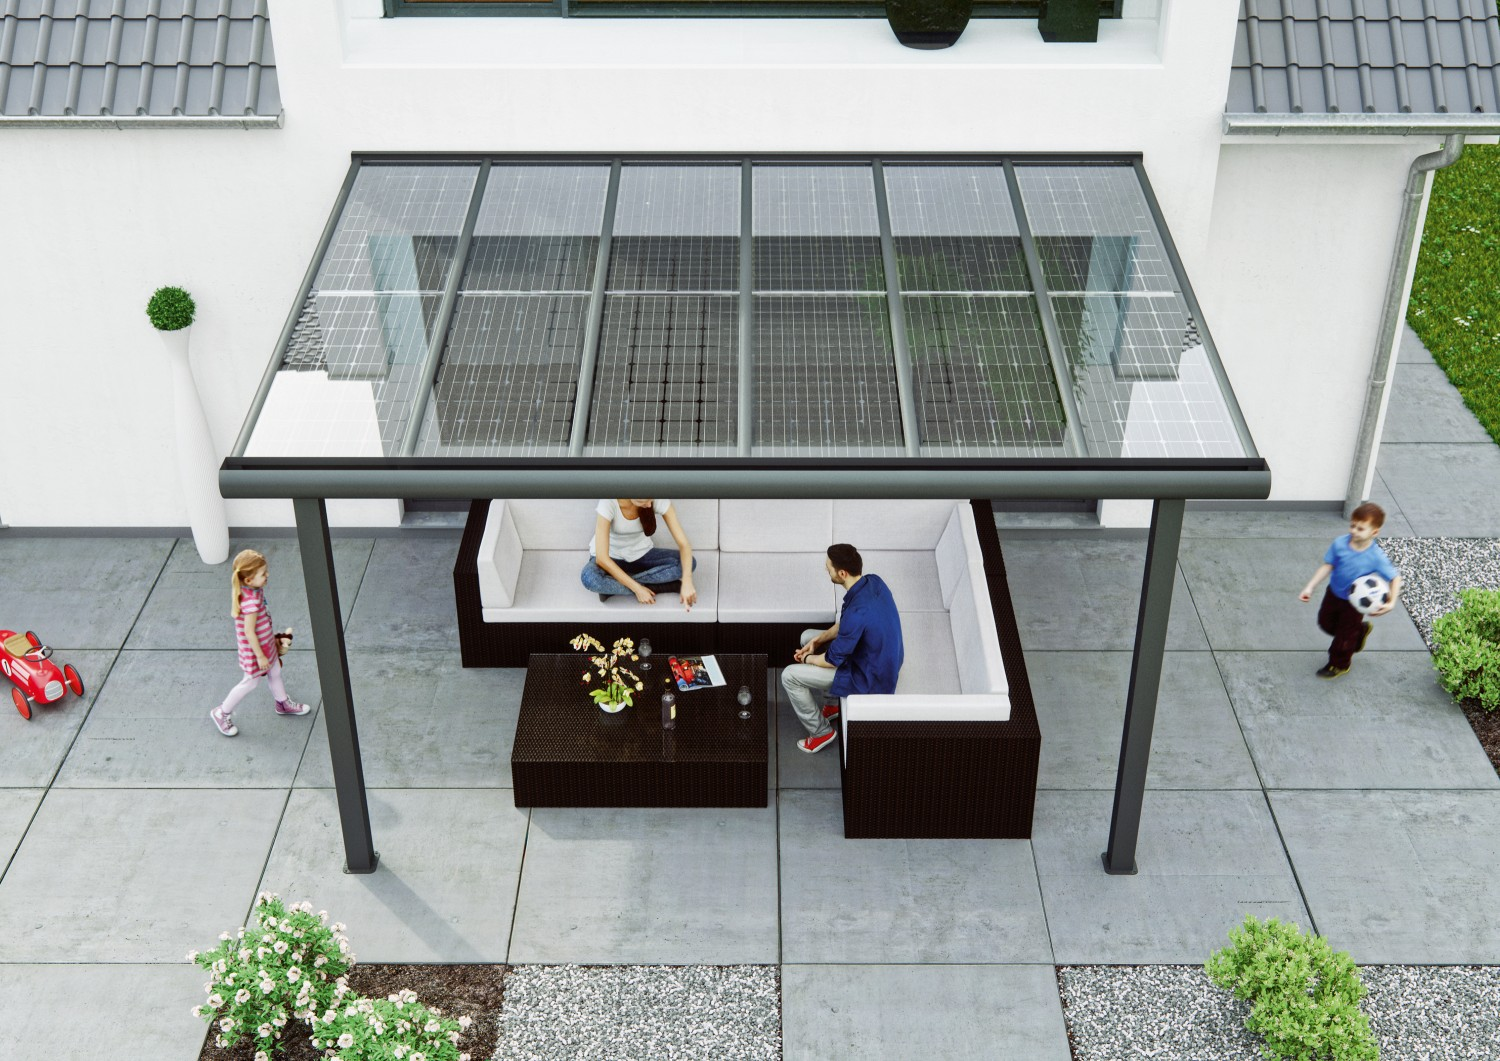 solarmodule von auf terrasse und carport sparen strom und kosten. Black Bedroom Furniture Sets. Home Design Ideas